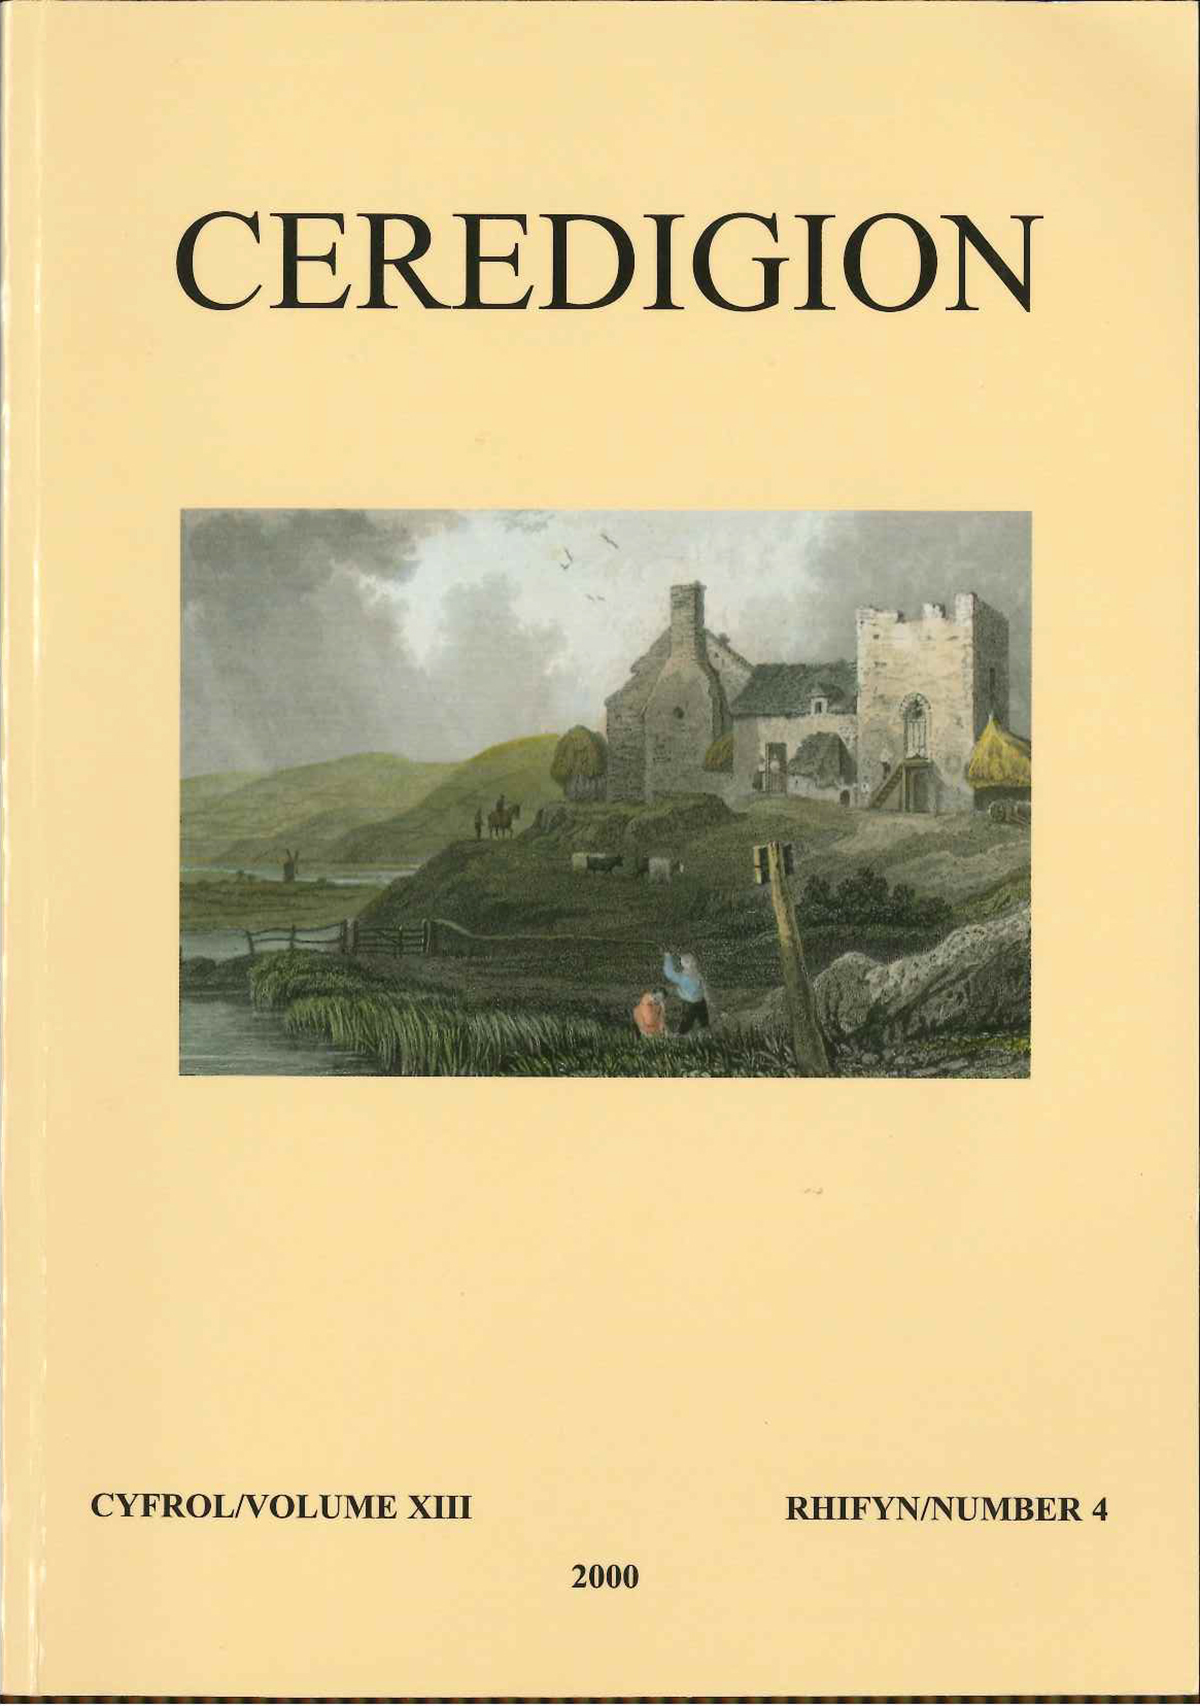 Ceredigion Journal of the Ceredigion Antiquarian Society Vol XIII, No 4 2000 - ISBN 0069 2263